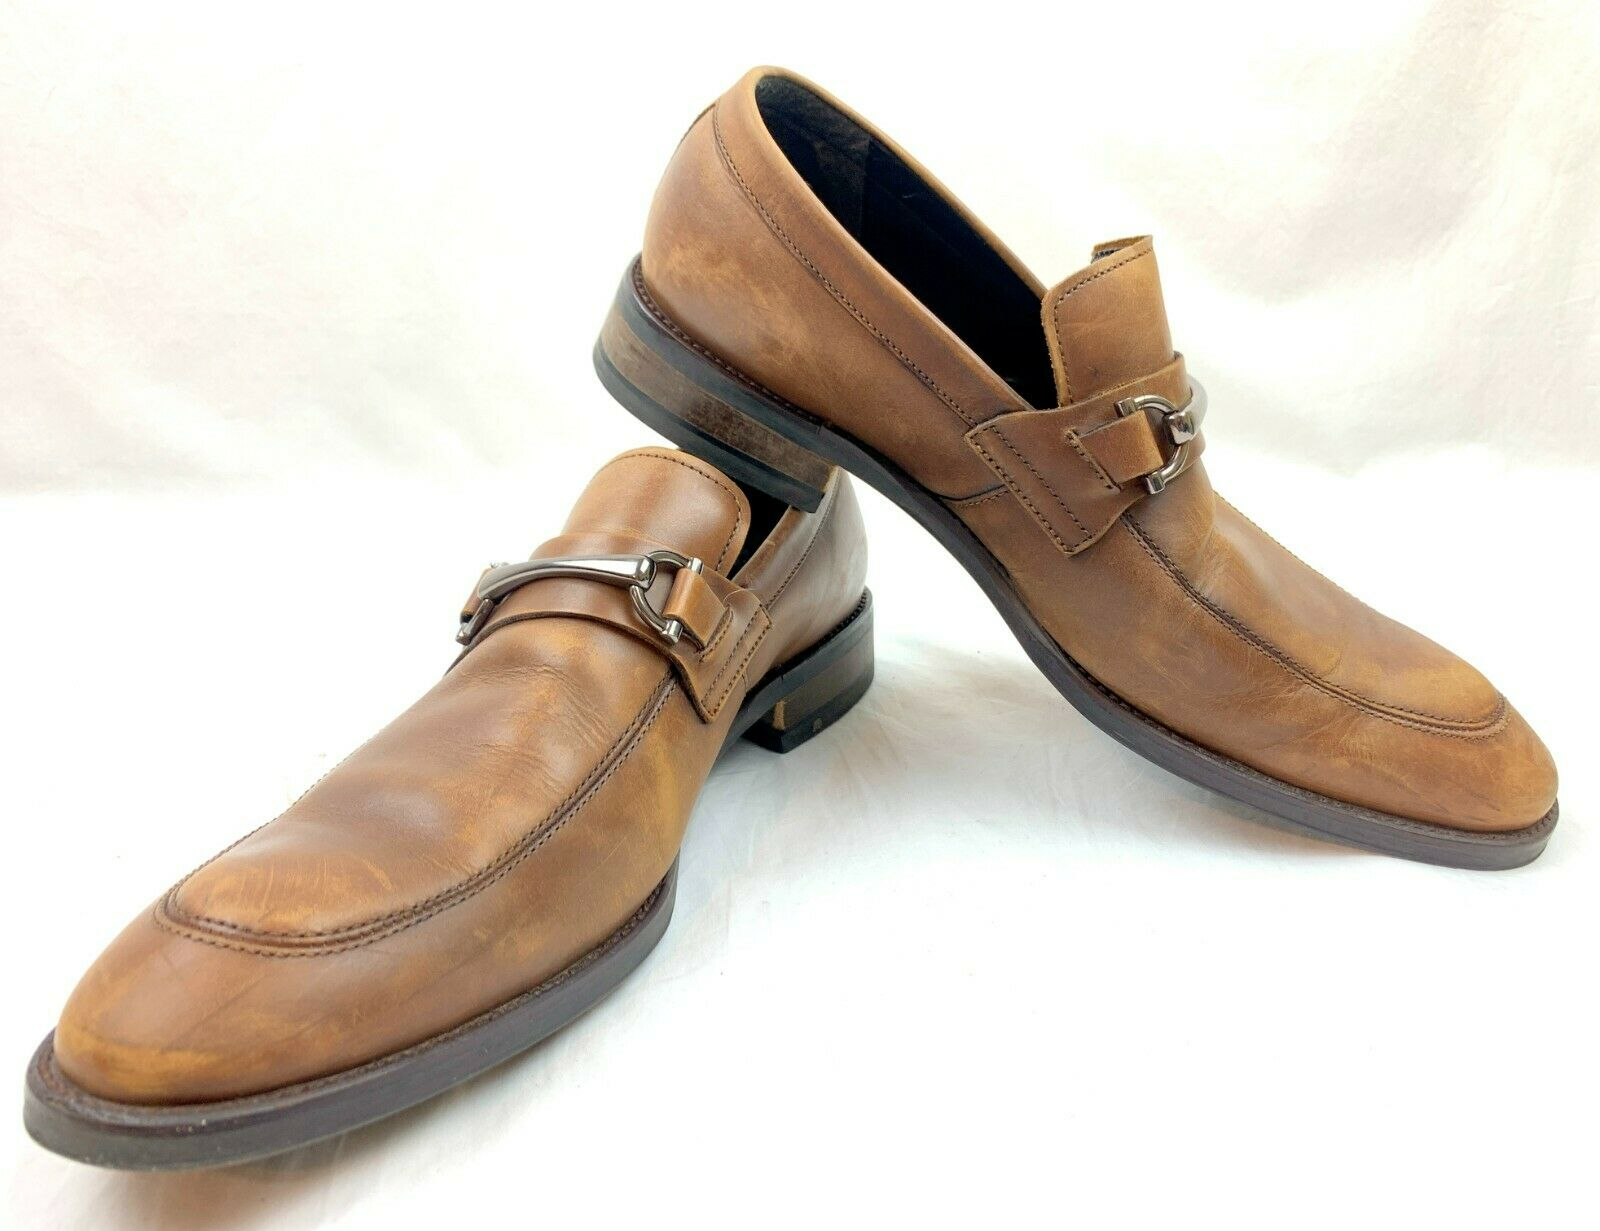 Kenneth Cole Men's Loafers Gathering Brown Leather Horsebit Slip On Shoes Size 9